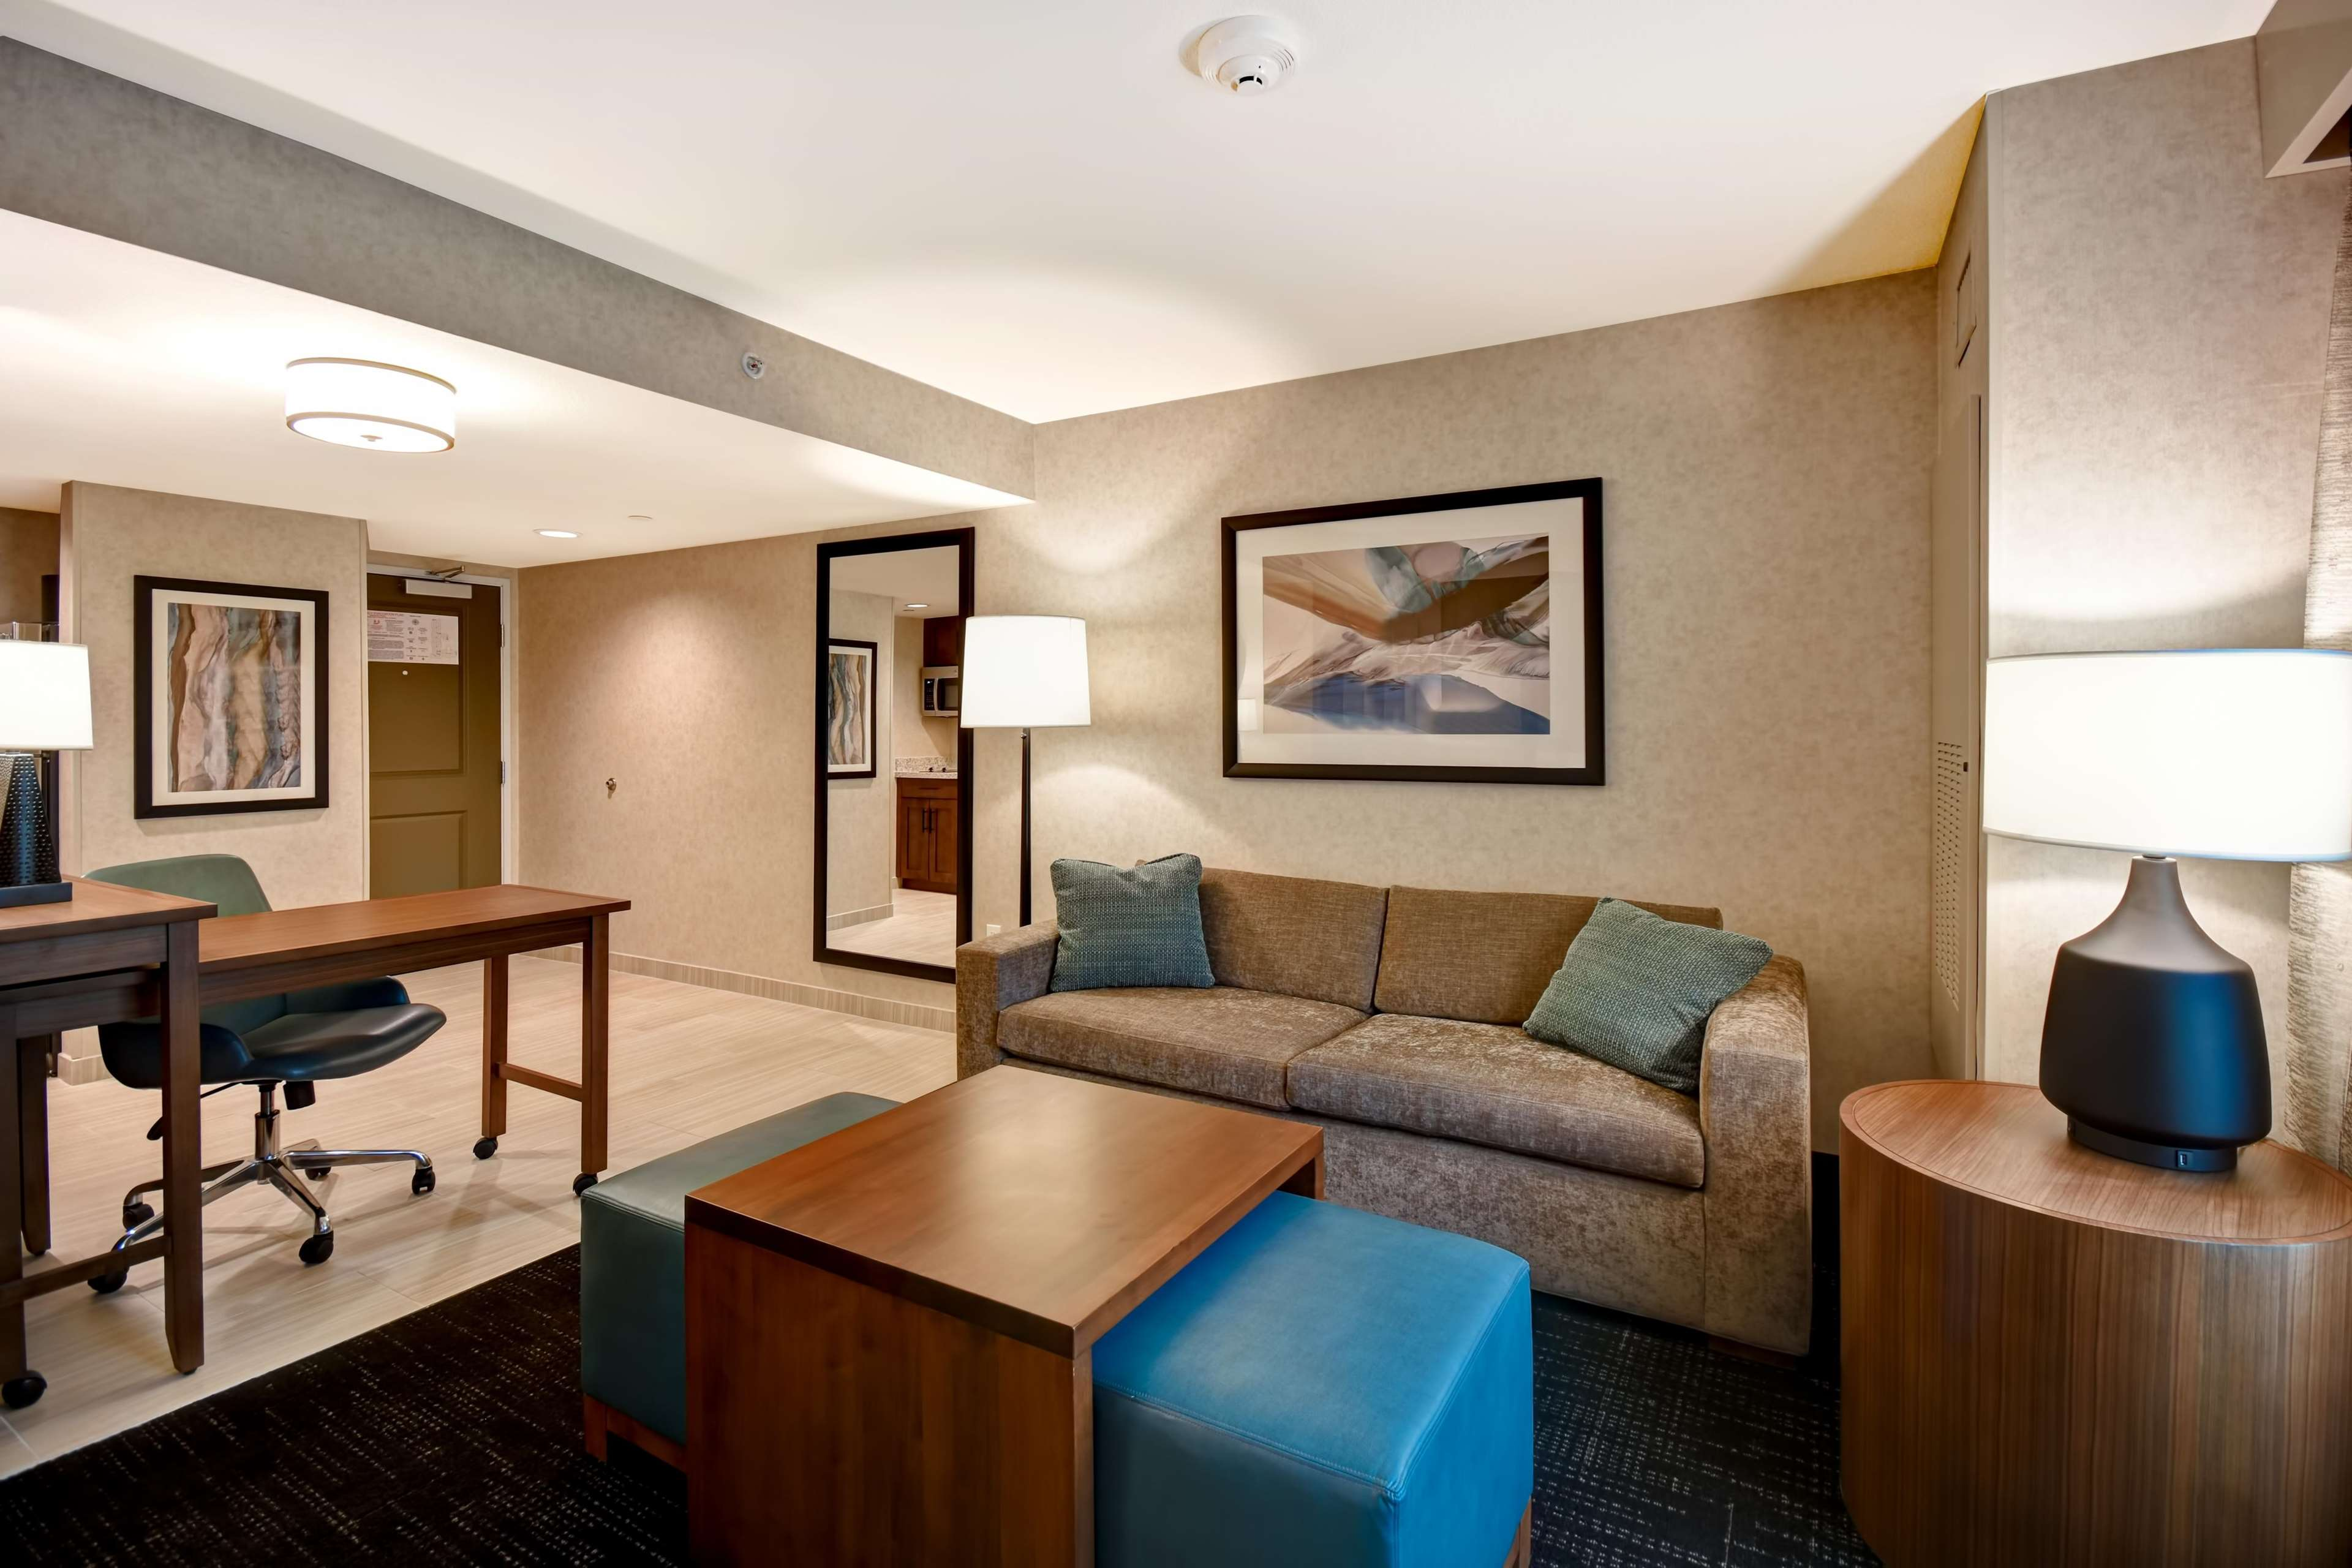 Homewood Suites by Hilton Pleasant Hill Concord image 13